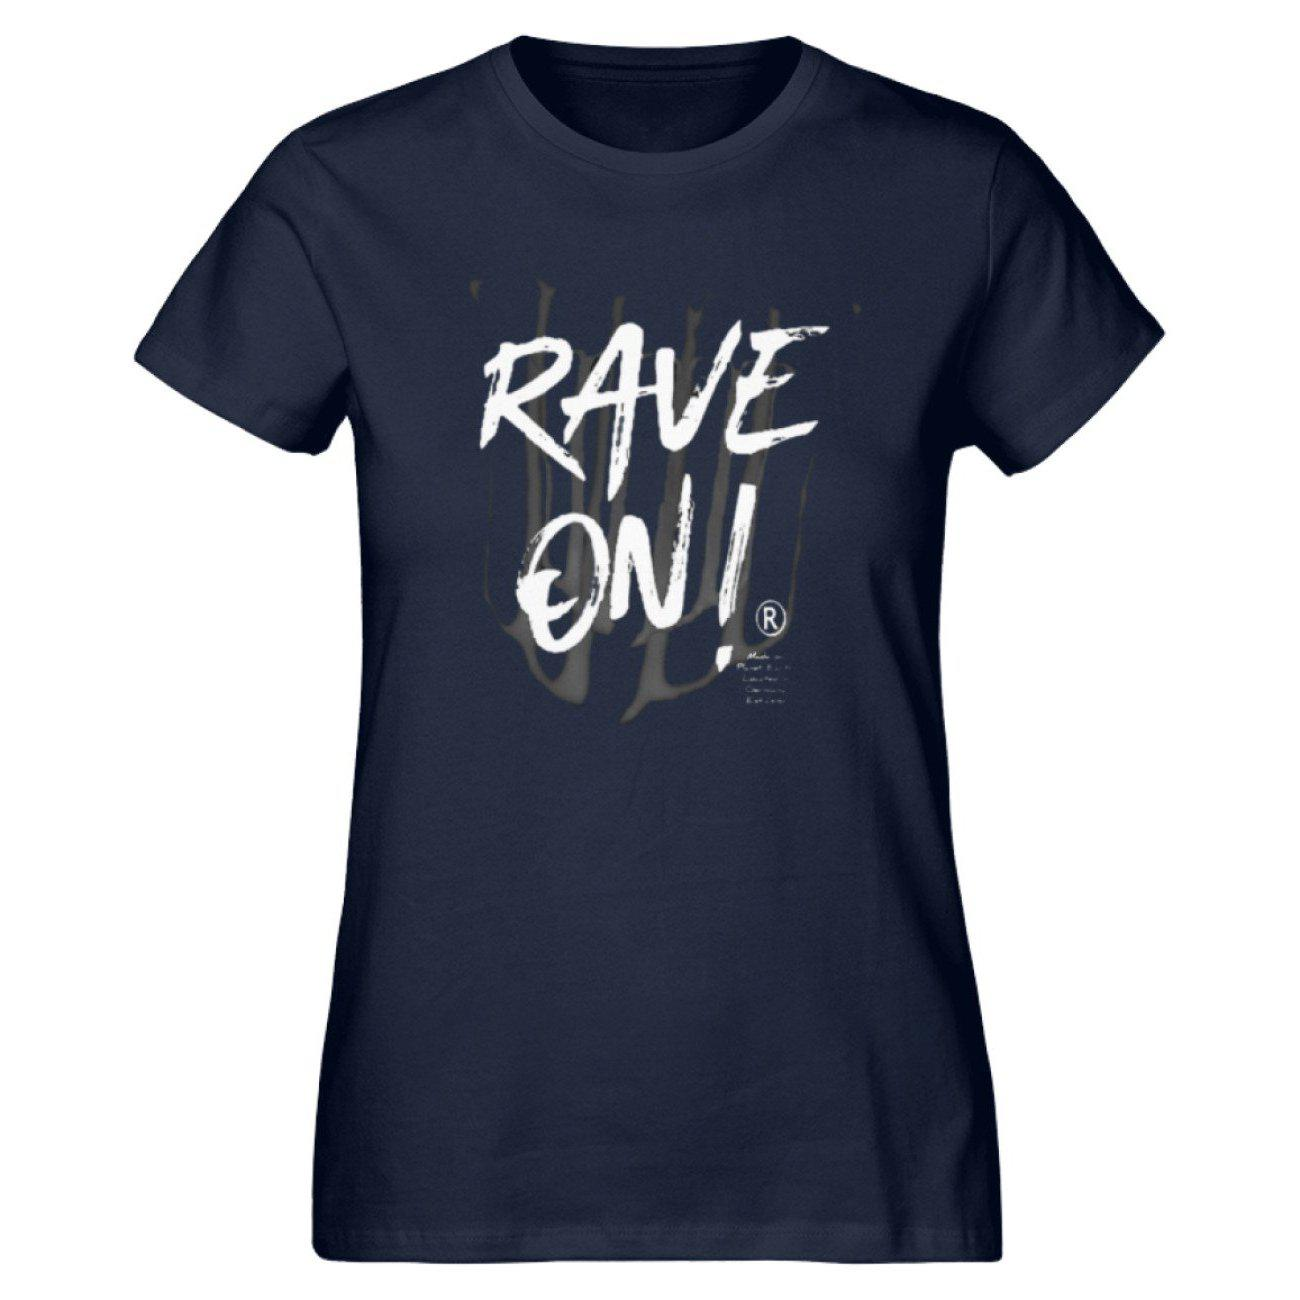 Rave On!® - Made On Planet Earth B2k20 - Damen Premium Organic Shirt-Damen Premium Organic Shirt ST/ST-French Navy-M-Rave-On! I www.rave-on.shop I Deine Rave & Techno Szene Shop I brand, Design - Rave On!® - Made On Planet Earth B2k20, marke, on, rave, raver, techno - Sexy Festival Streetwear , Clubwear & Raver Style